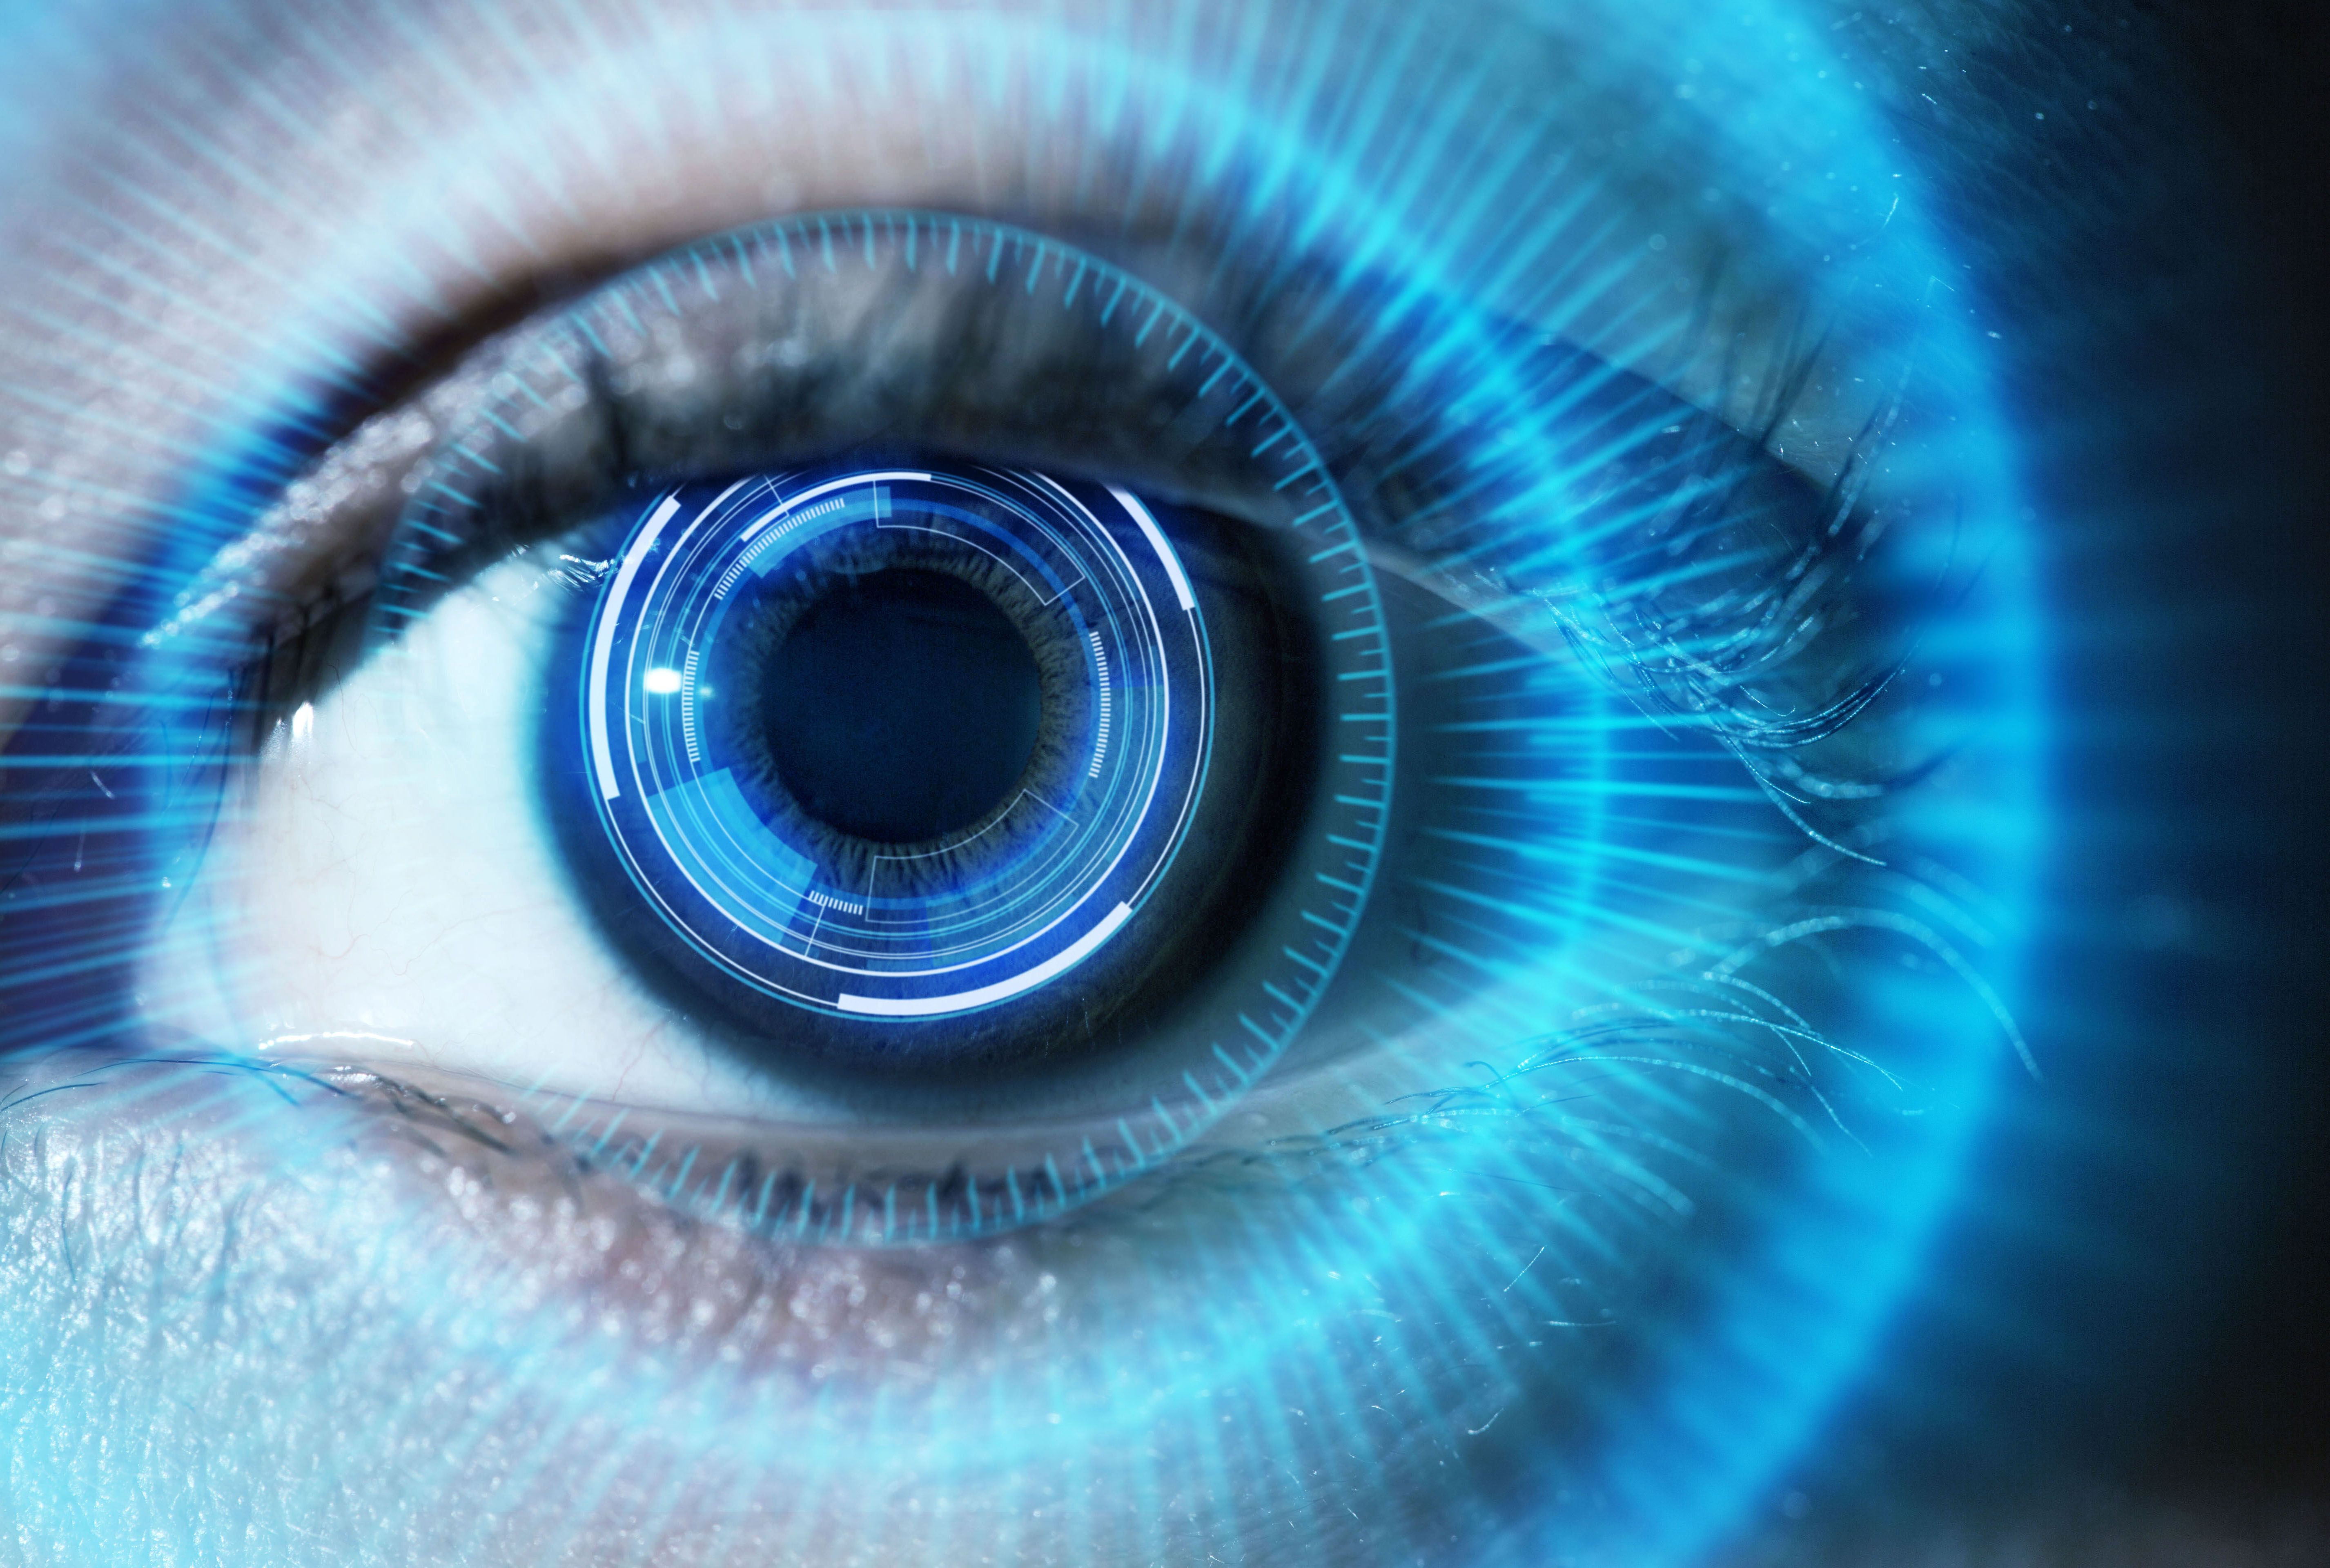 Scientists Have Made the Most Powerful Bionic Eye Ever